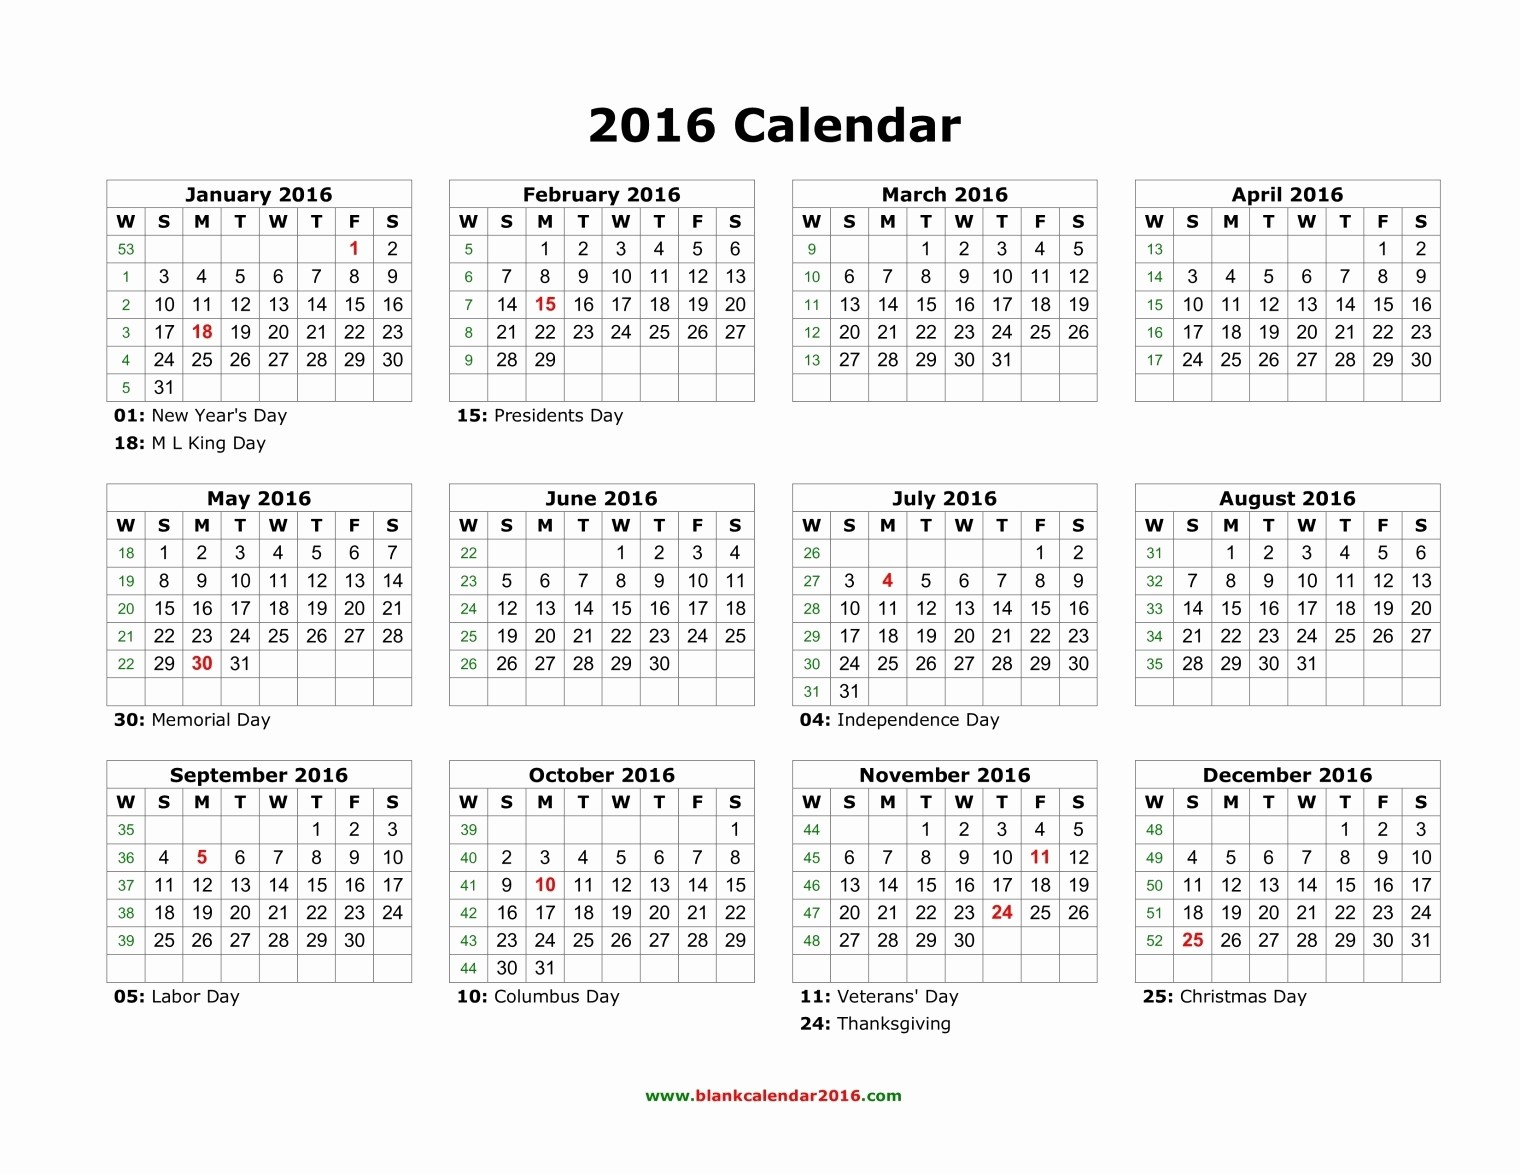 Time Off Calendar Template 2016 Awesome 2016 Yearly Calendar with Holidays Printable